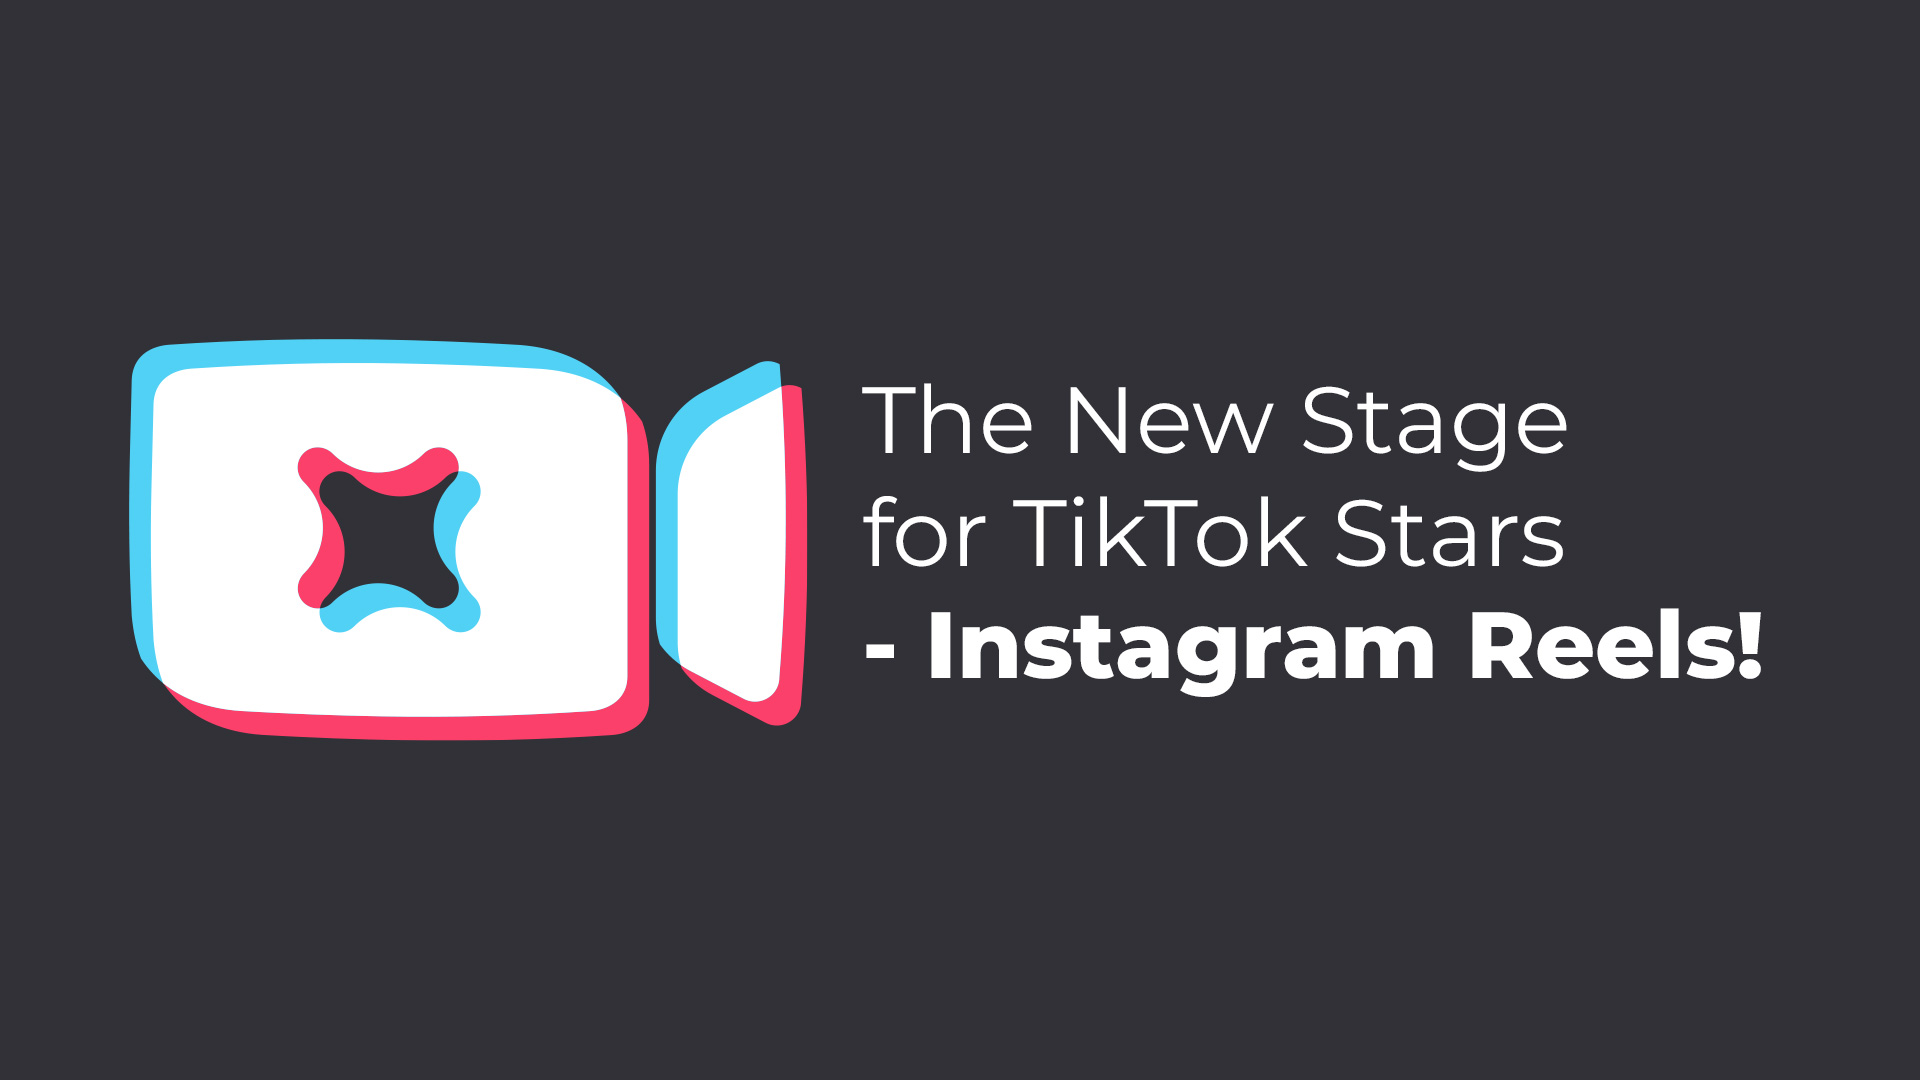 The New Stage for TikTok Stars - Instagram Reels